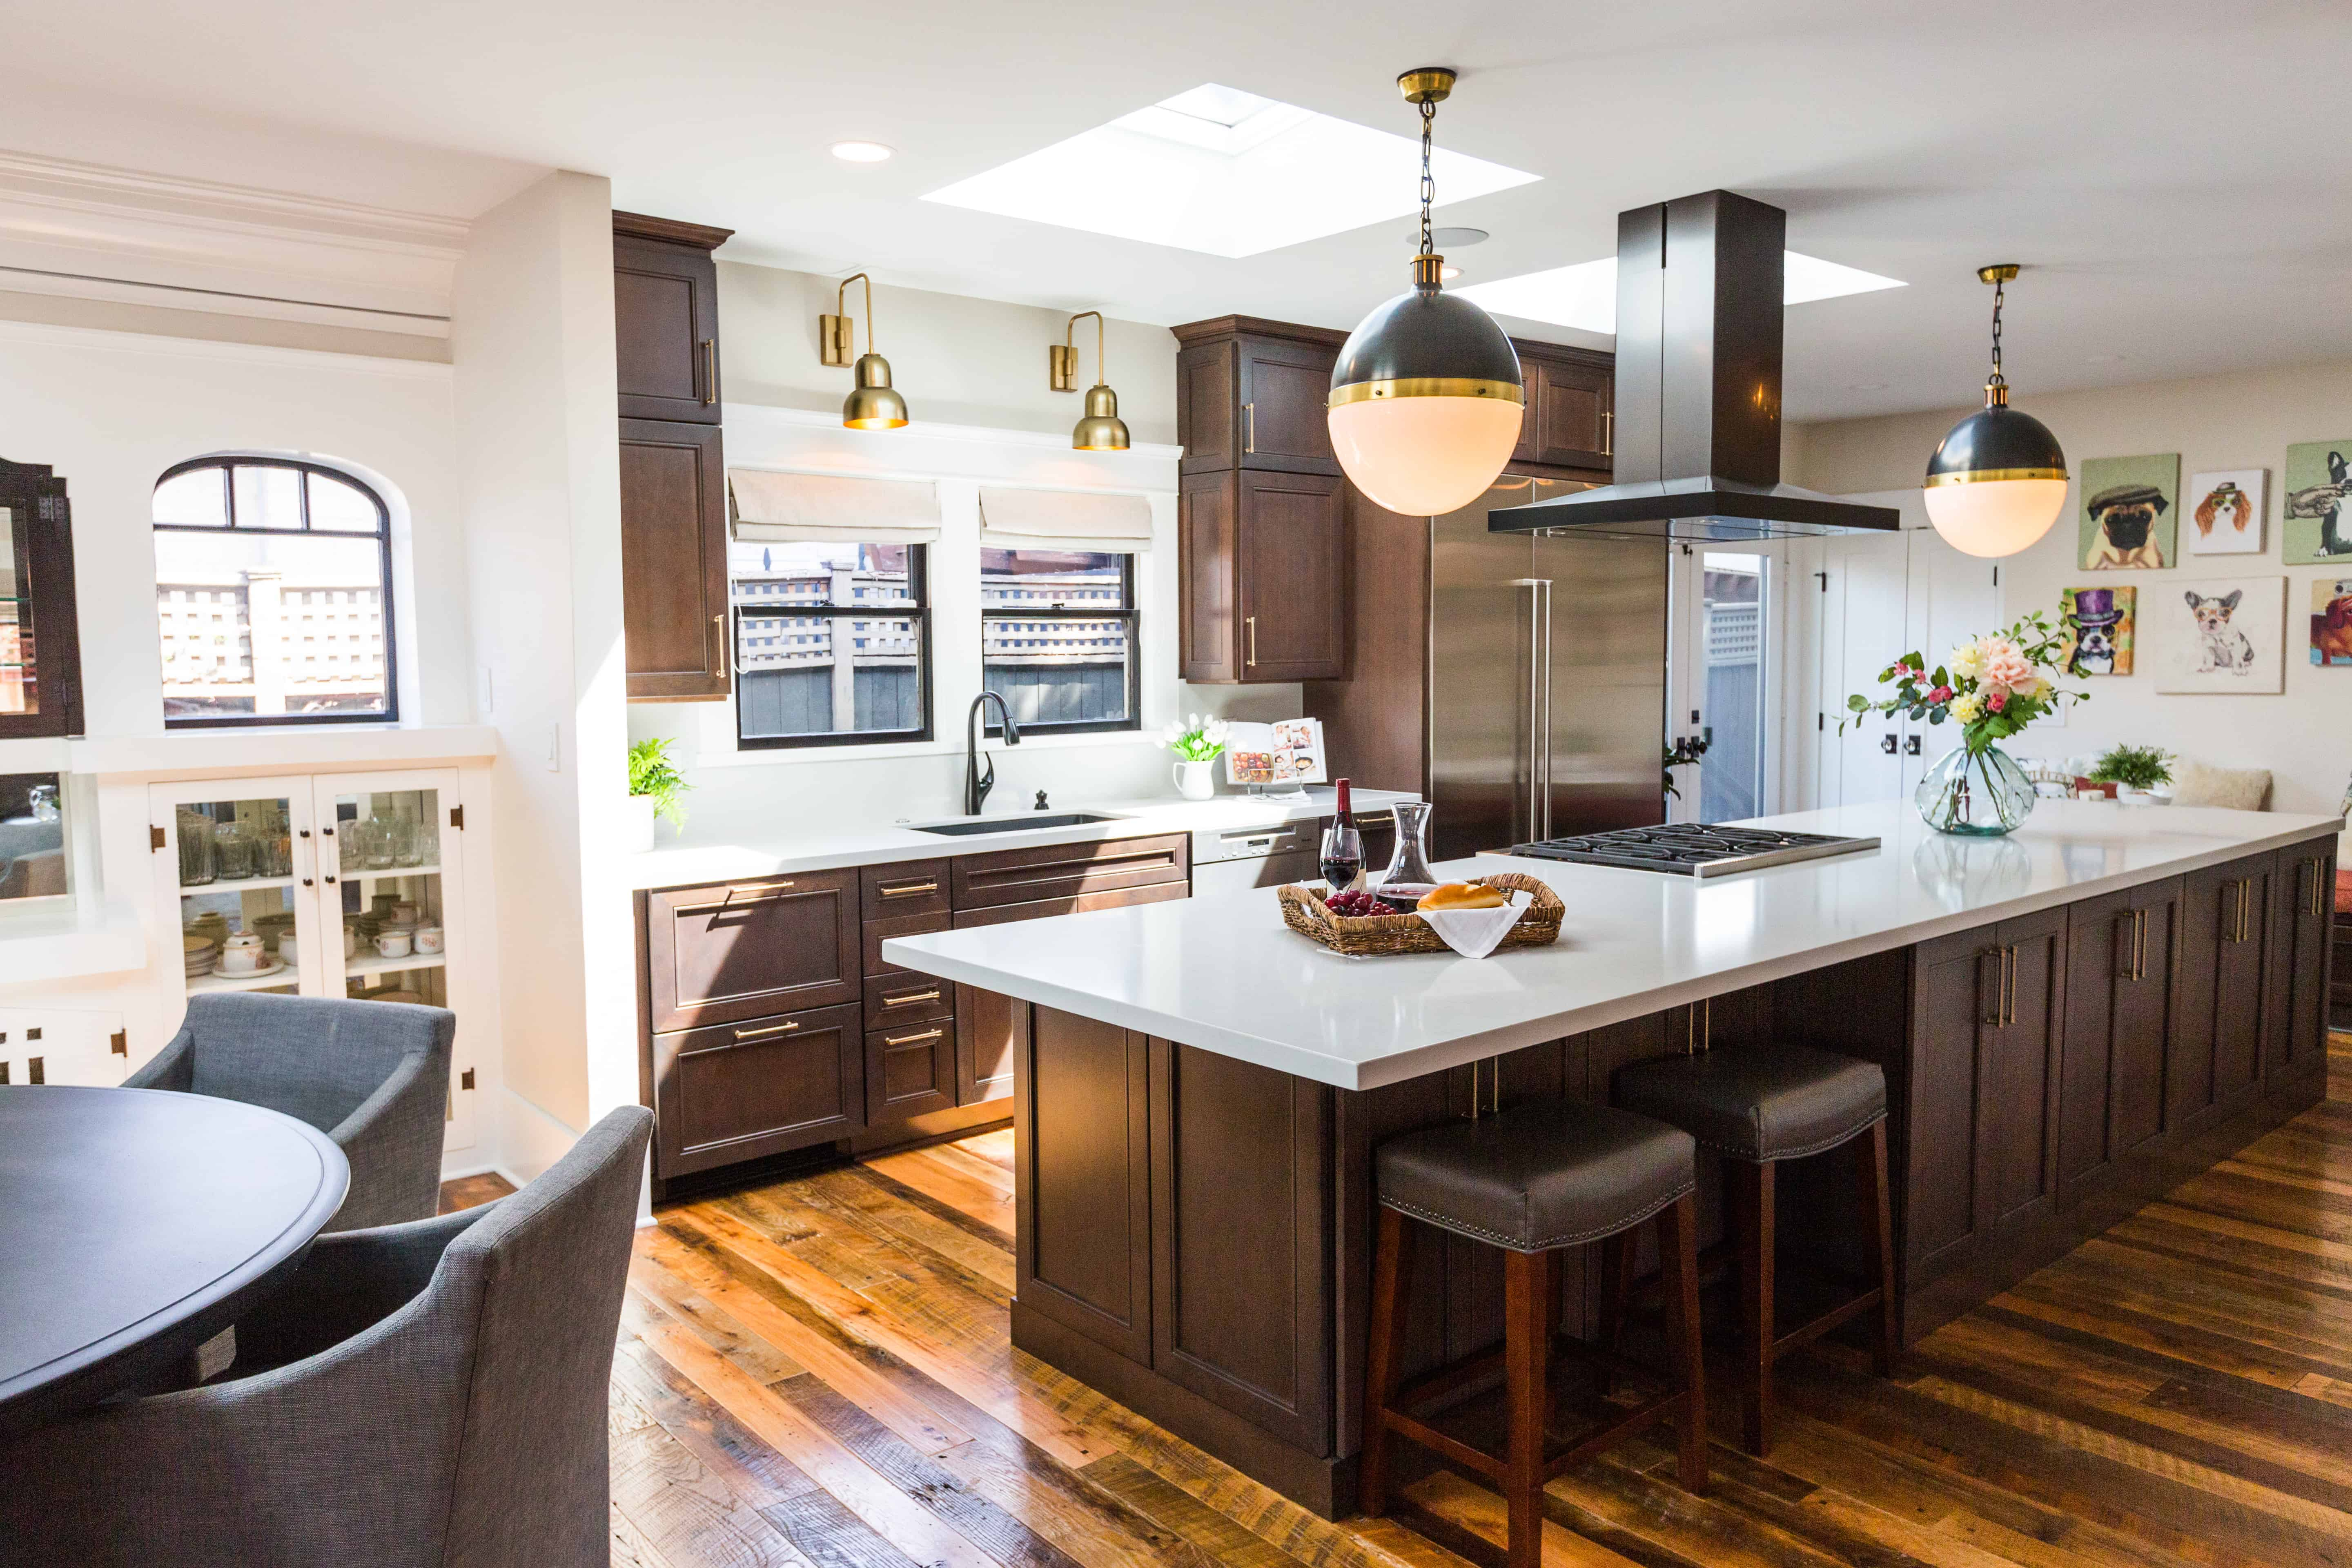 Gorgeous kitchen remodel by Blythe Interiors